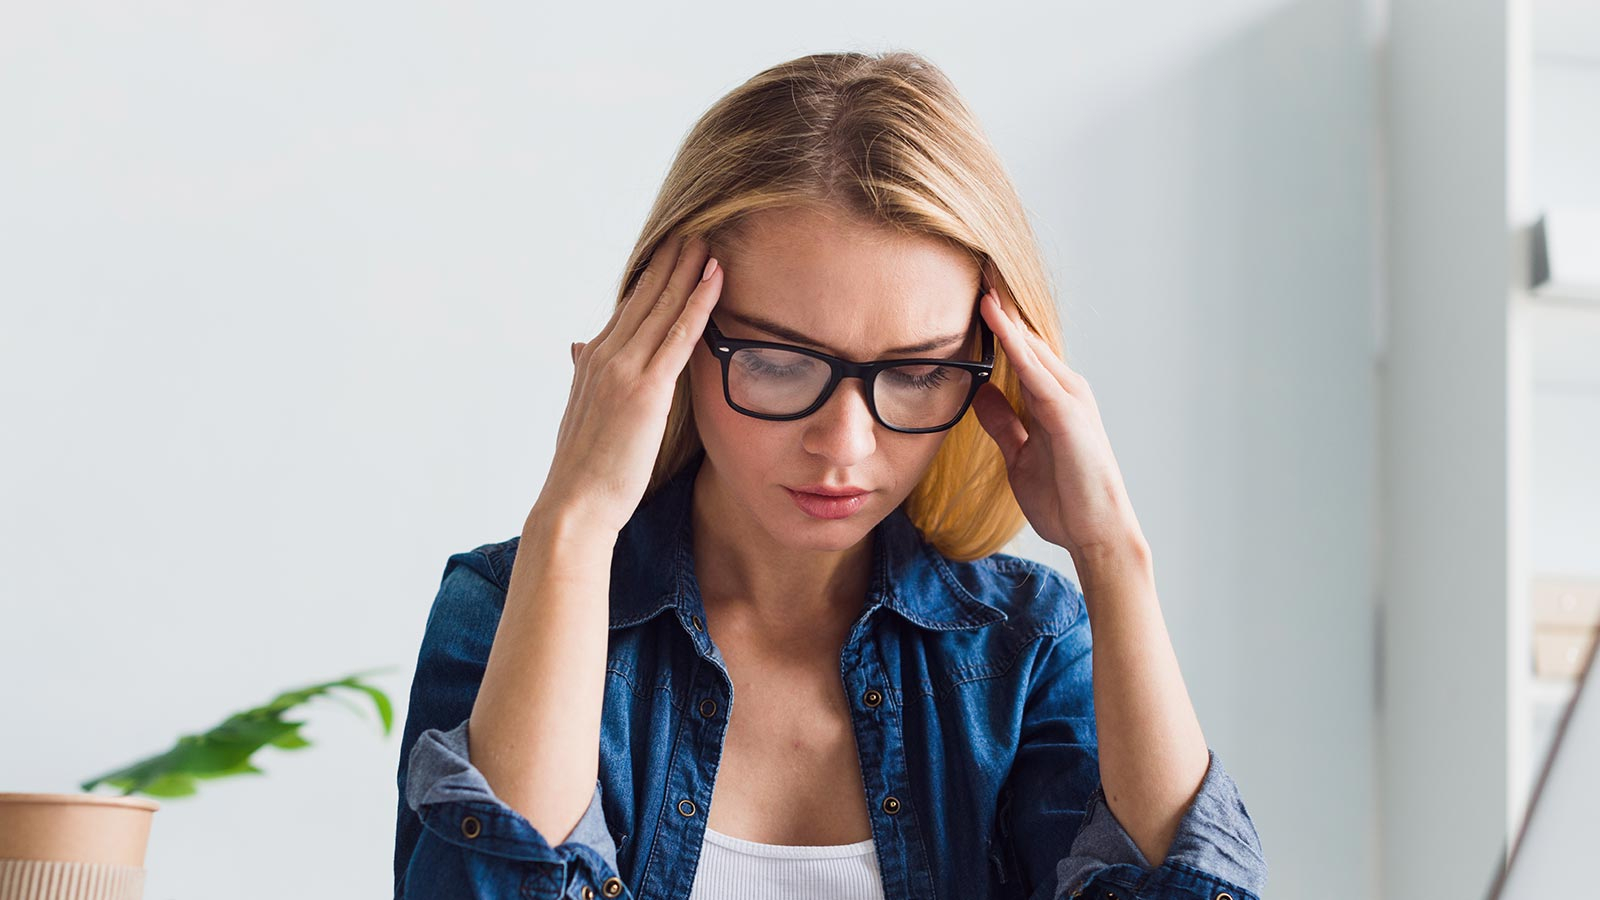 headache is a major side effects of adjusting to new eyeglasses